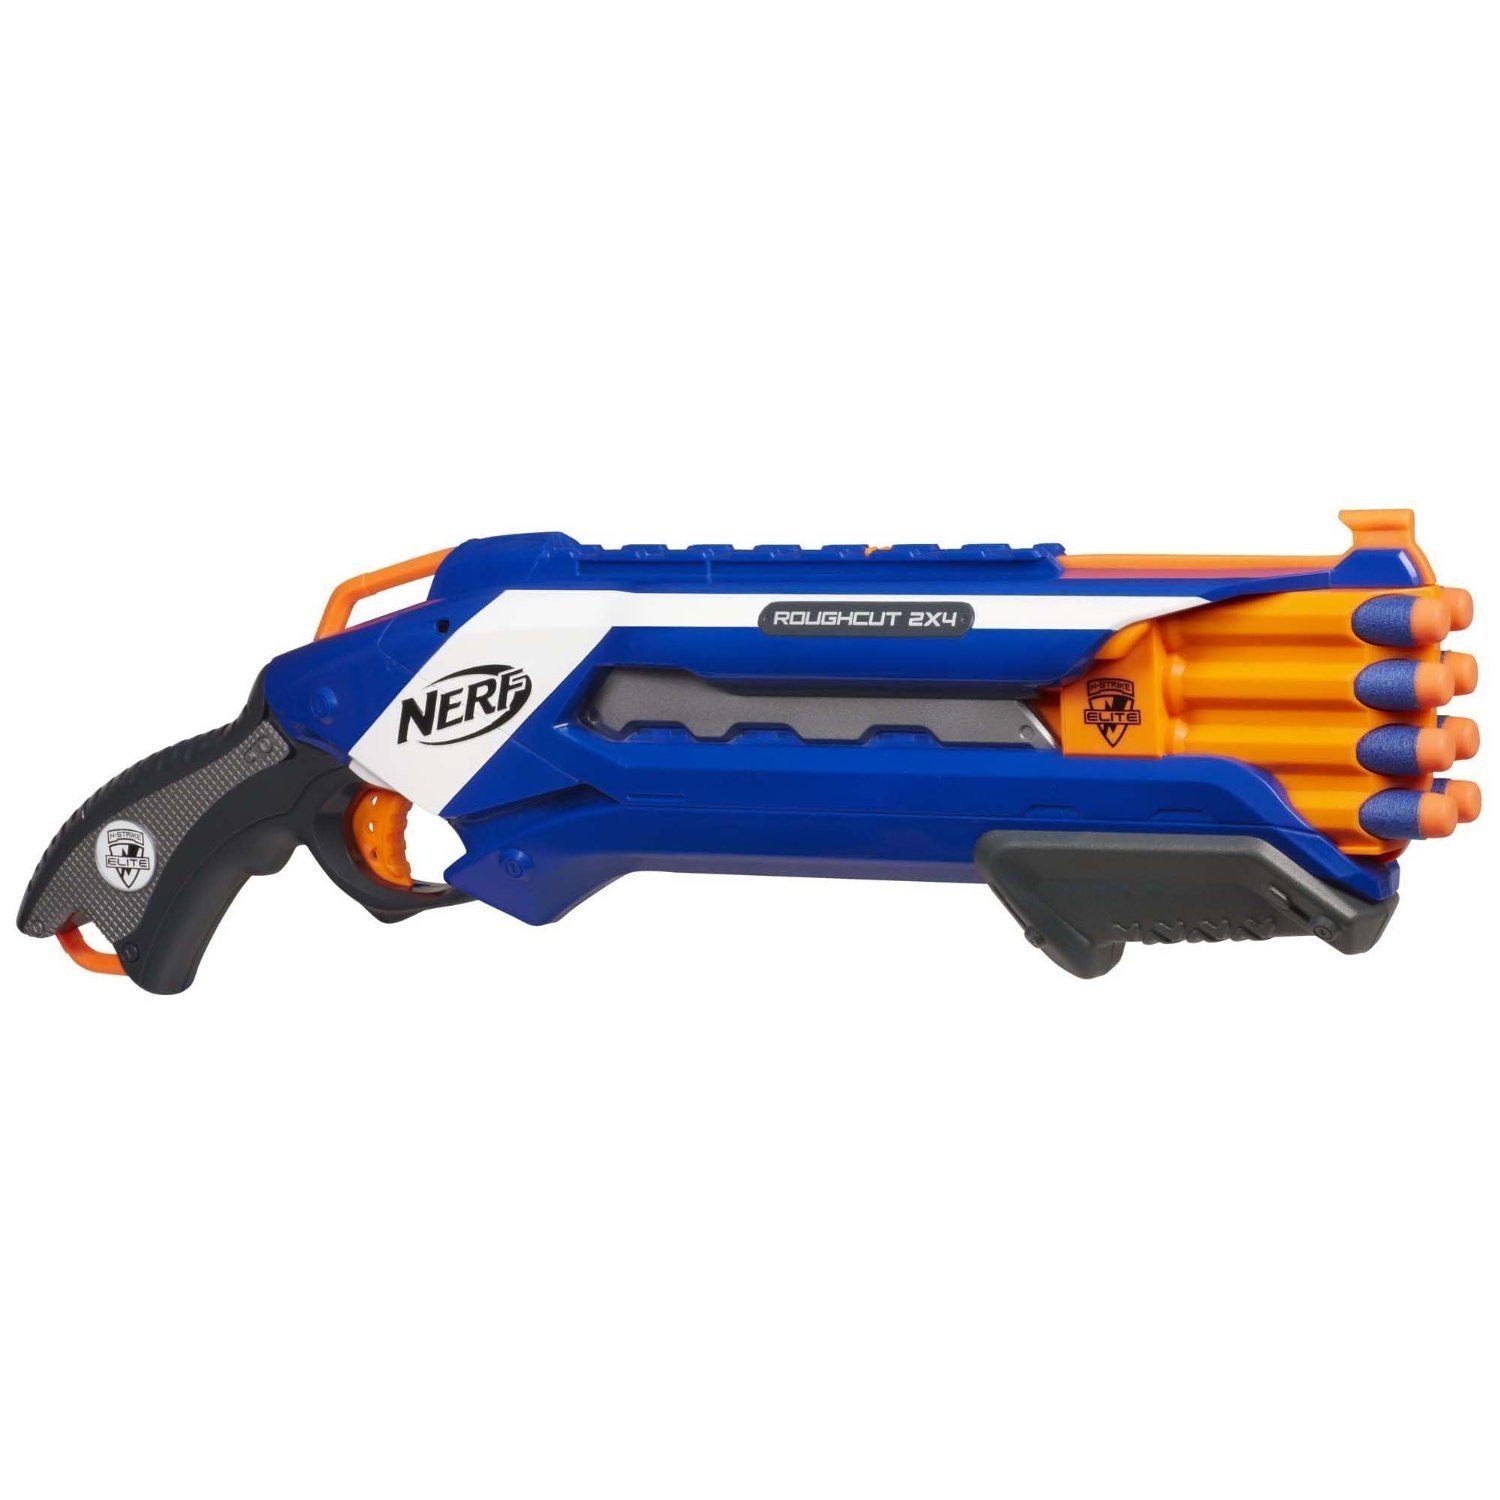 Find out how to this fun Nerf N Strike Elite Rough Cut 2x4